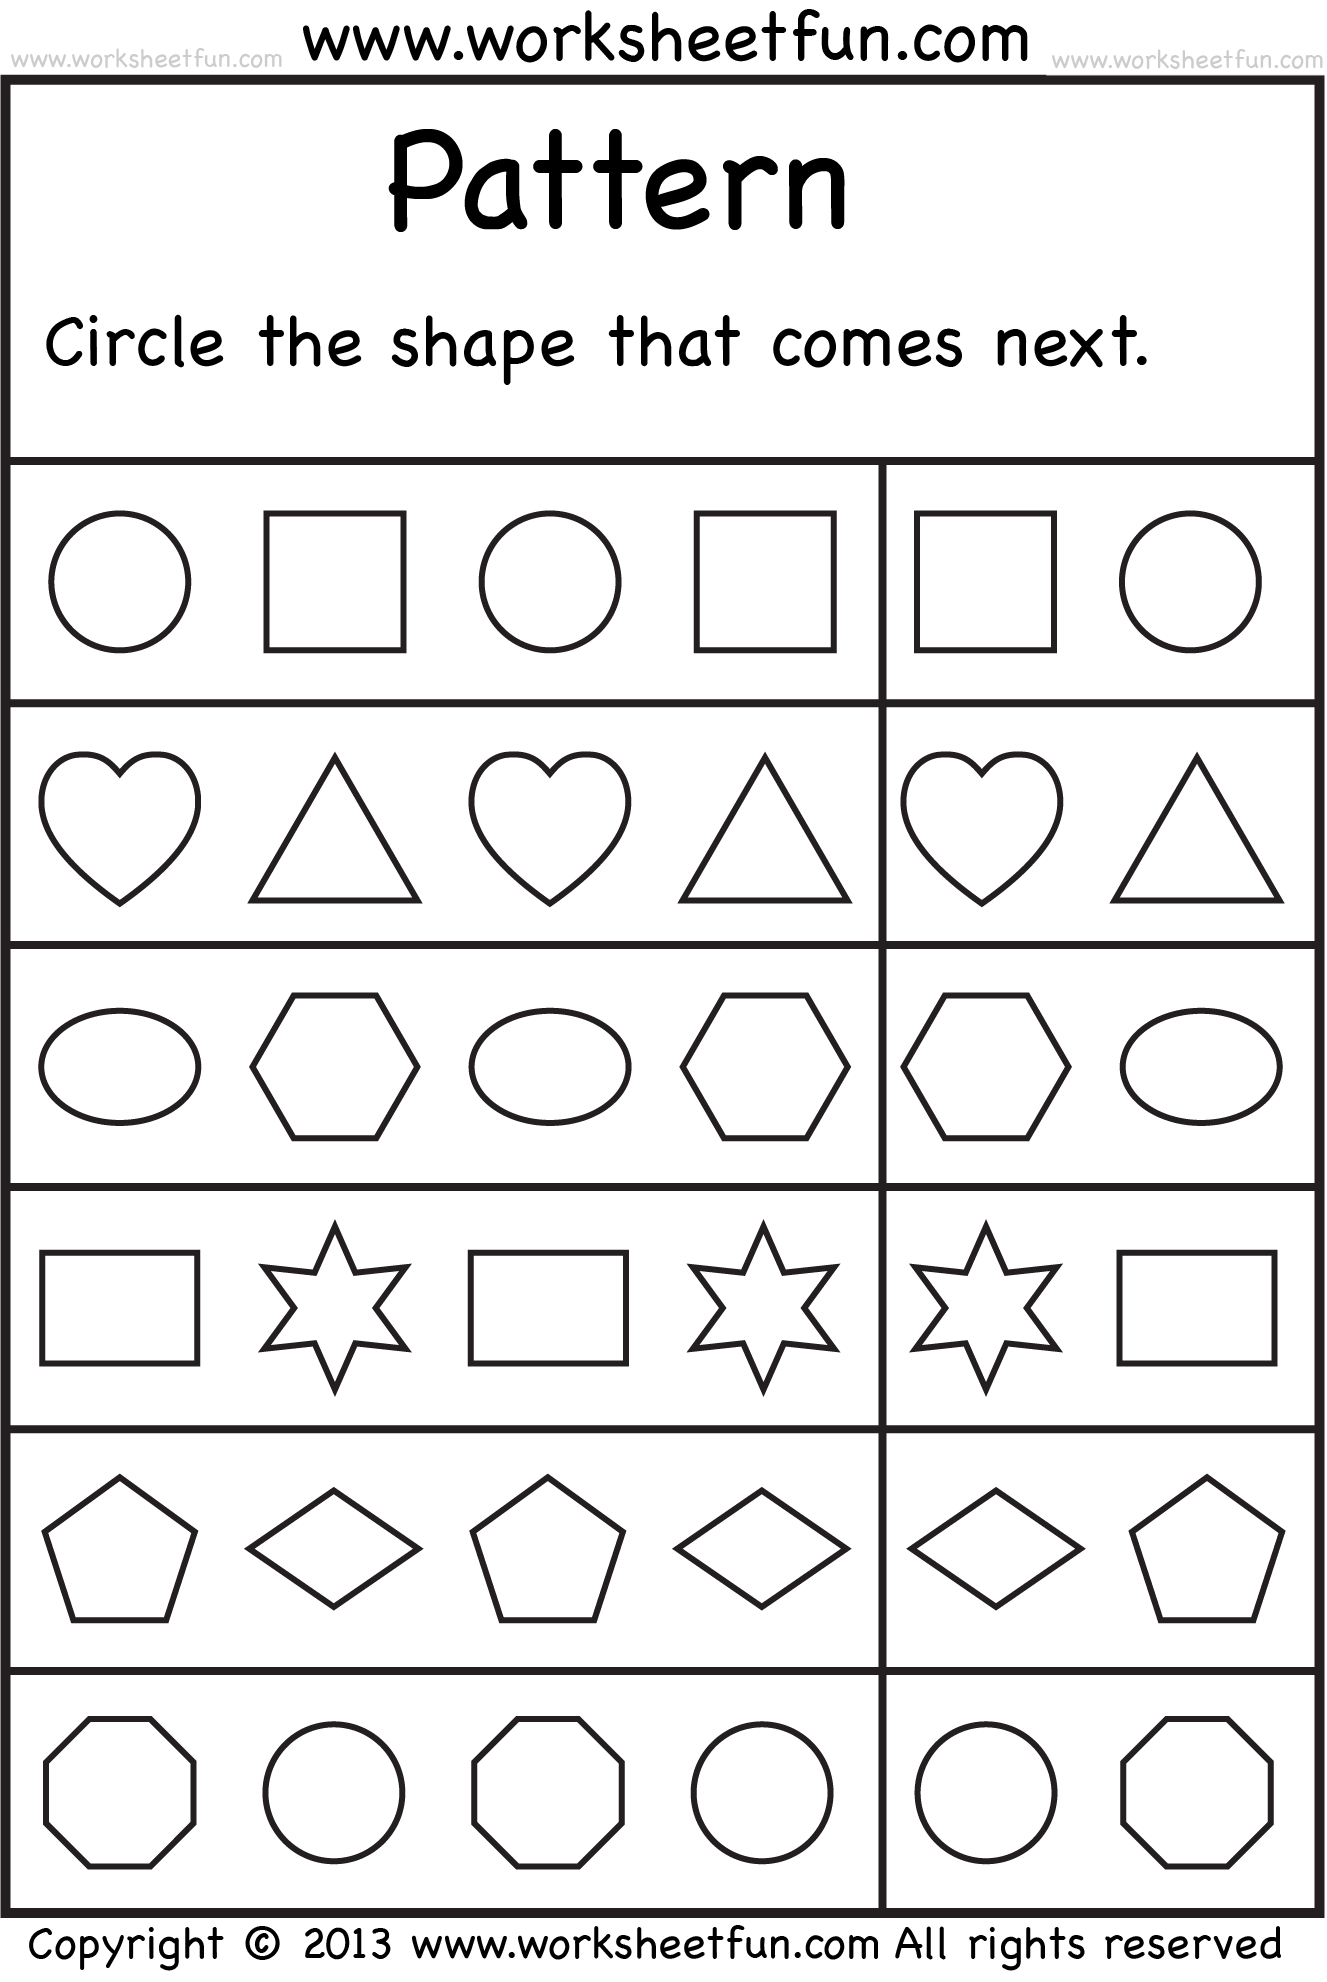 Weirdmailus  Mesmerizing  Images About School Worksheets On Pinterest  Number Words  With Interesting  Images About School Worksheets On Pinterest  Number Words Alphabet Worksheets And Free Printable Kindergarten Worksheets With Attractive Worksheets Th Grade Also Distributive Property Worksheets Th Grade In Addition Reducing Radicals Worksheet And Piano Worksheets For Beginners As Well As Verbs And Nouns Worksheet Additionally Trophic Level Worksheet From Pinterestcom With Weirdmailus  Interesting  Images About School Worksheets On Pinterest  Number Words  With Attractive  Images About School Worksheets On Pinterest  Number Words Alphabet Worksheets And Free Printable Kindergarten Worksheets And Mesmerizing Worksheets Th Grade Also Distributive Property Worksheets Th Grade In Addition Reducing Radicals Worksheet From Pinterestcom